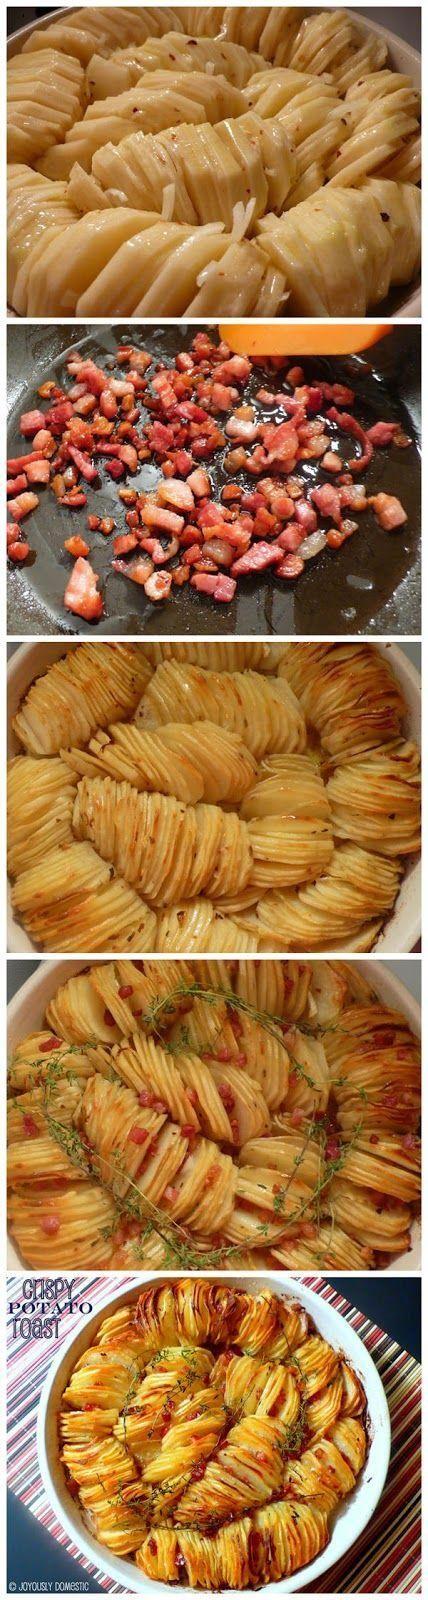 This is your #6 Top Pin in the Vegan Community Board in November: Crispy Potato Roast. To make Vegan use v butter.  - 243 re-pins (You voted with yor re-pins). Congratulations @lindamagic ! Vegan Community Board http://www.pinterest.com/heidrunkarin/vegan-community